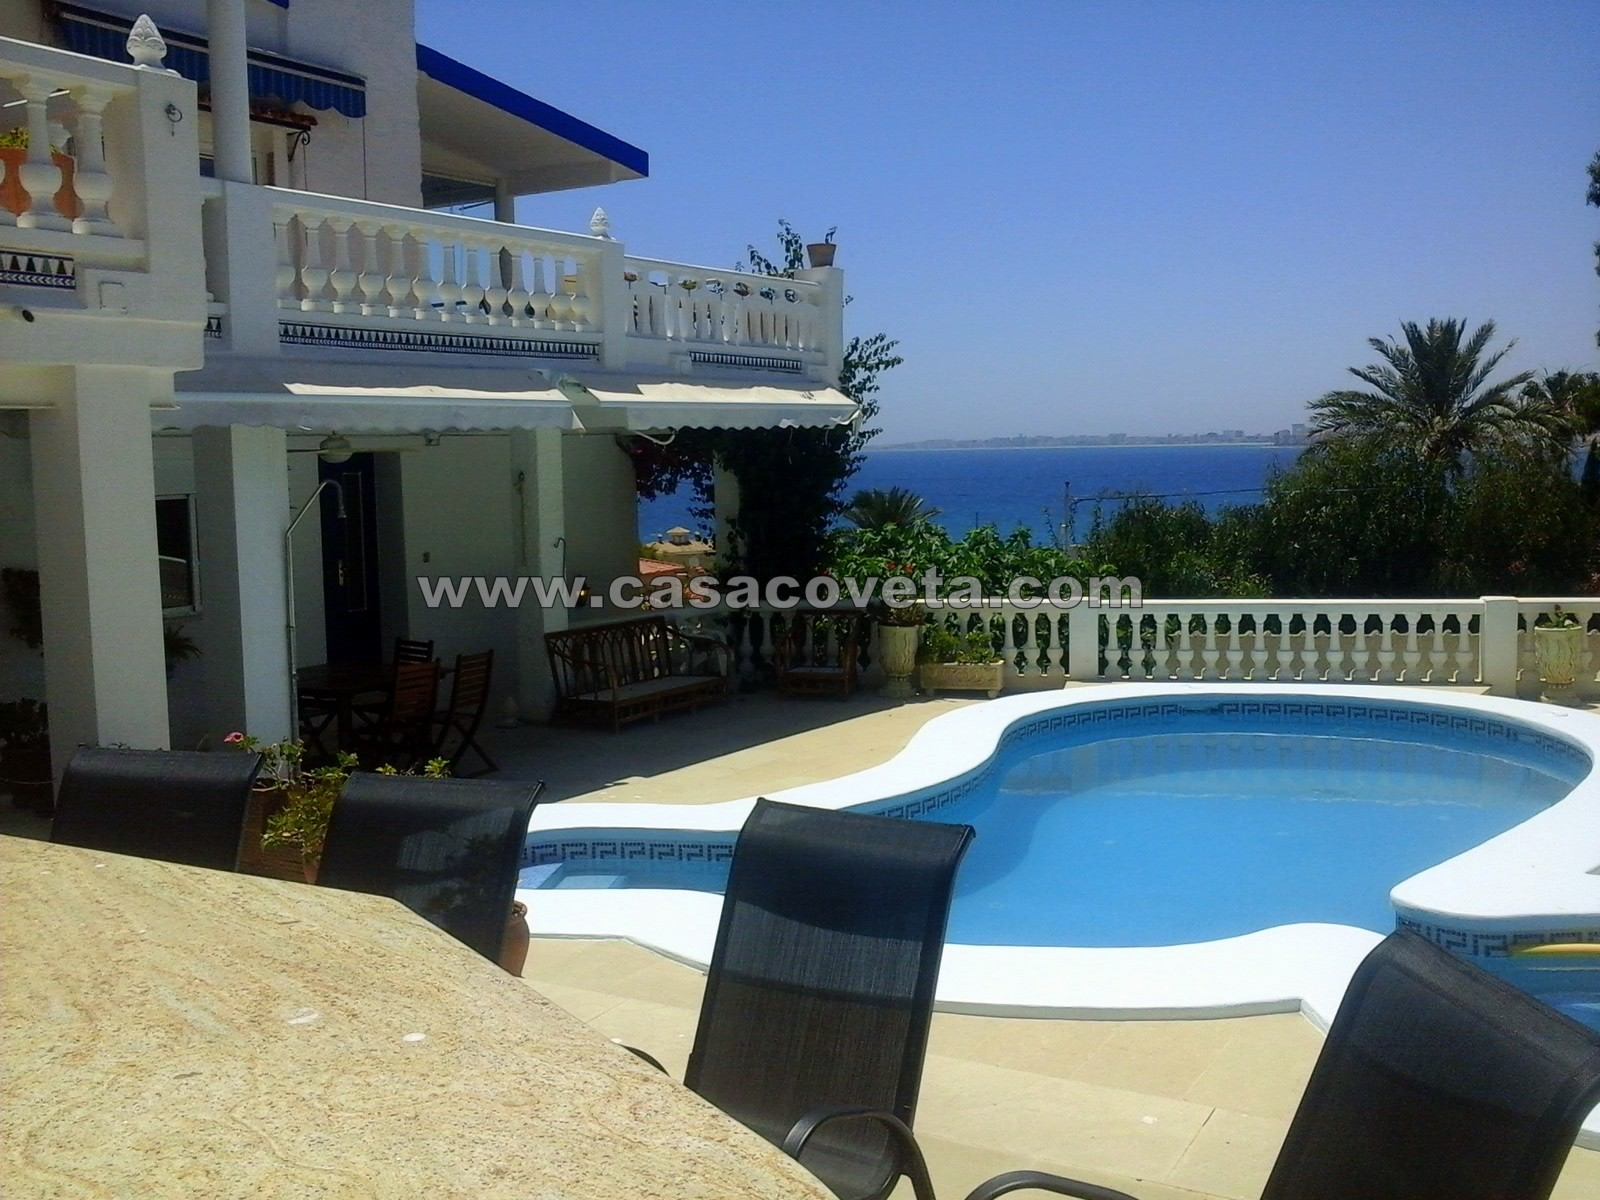 7 bedroom villa, with private pool, games room with lovely sea views situated in the heart of Coveta. This wonderful villa is a perfect family retreat!. Ref: 553